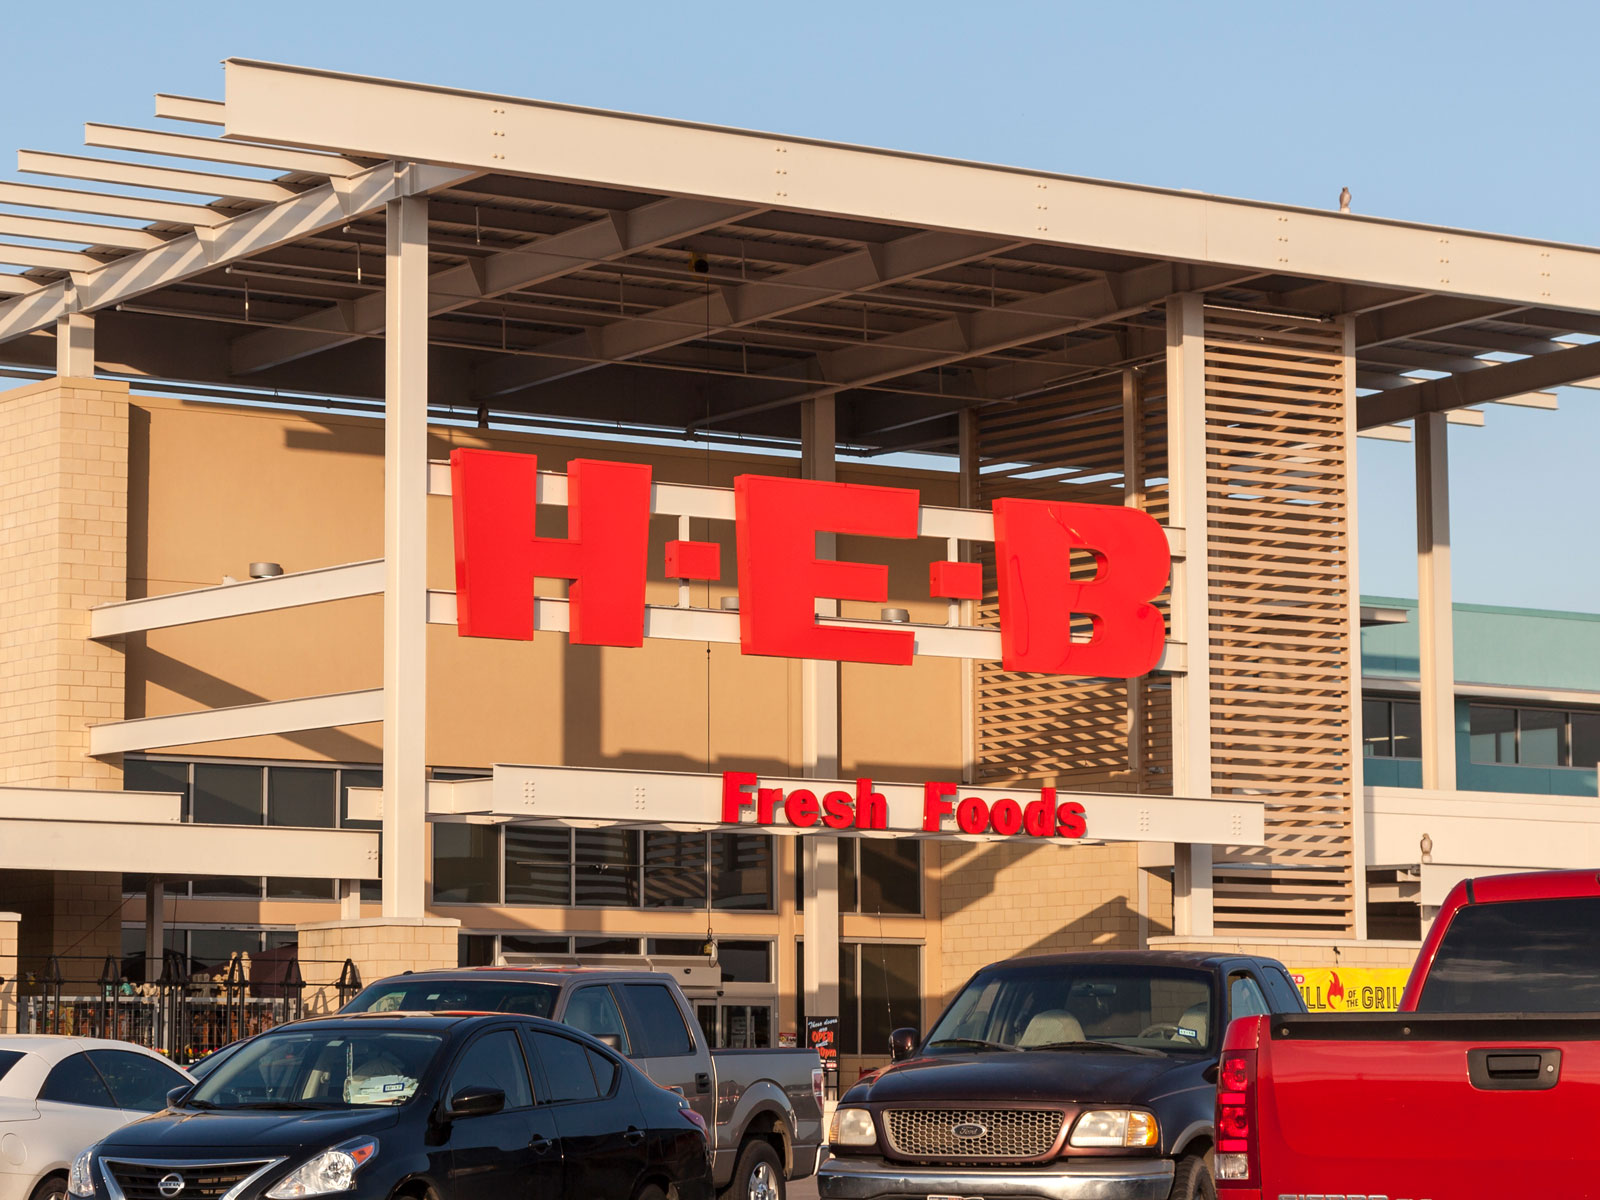 heb-grocery-index-FT-BLOG0120.jpg